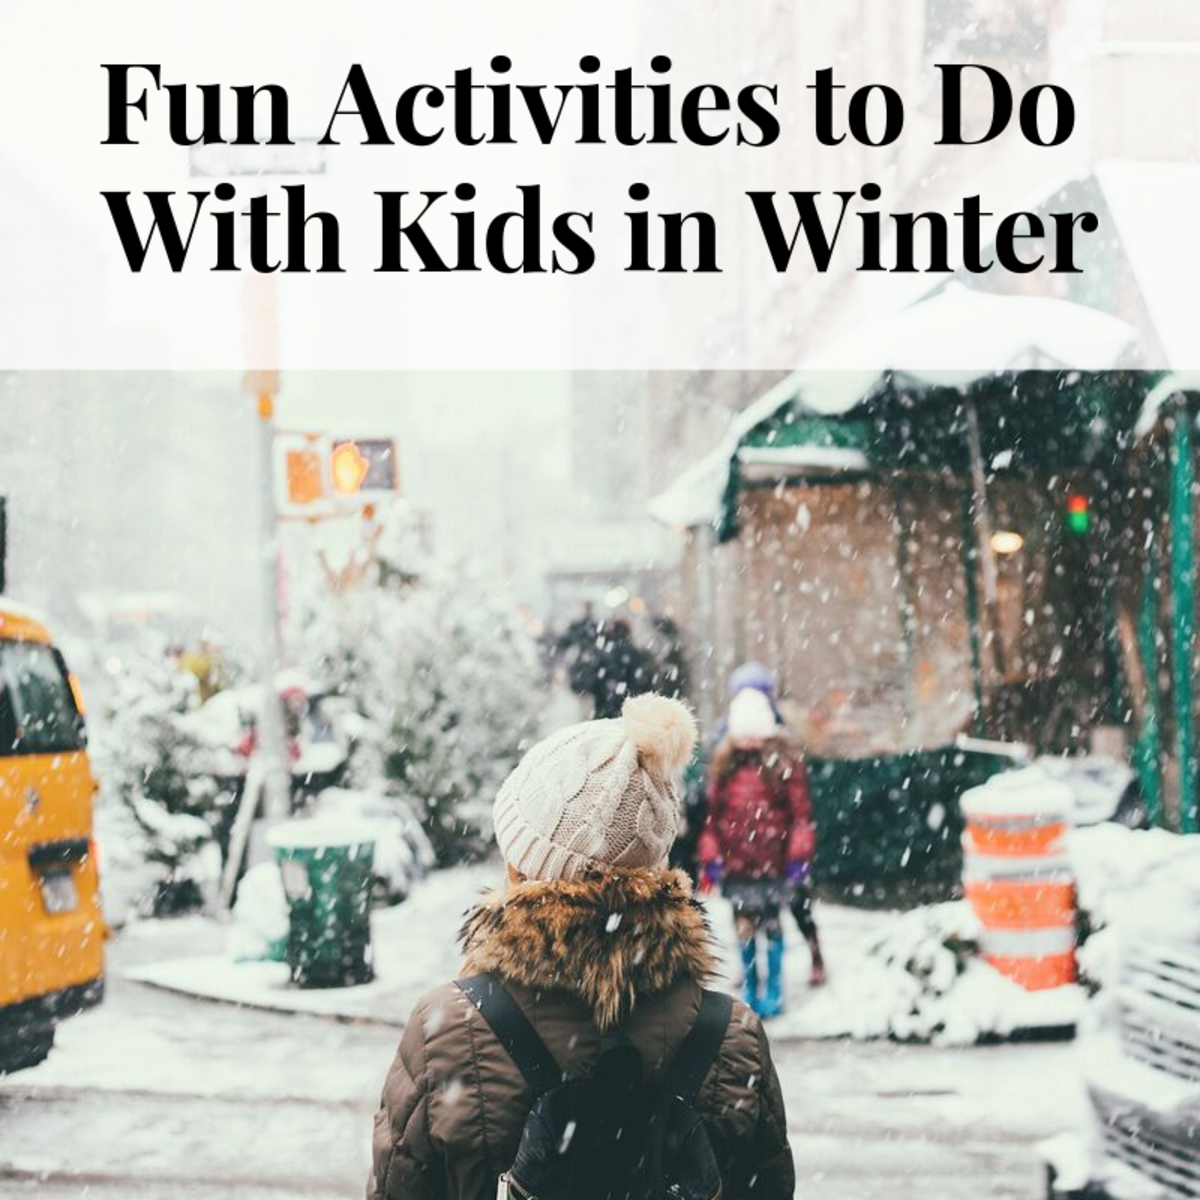 There's no reason to hibernate with preschoolers in winter. Stay active and create adventures!